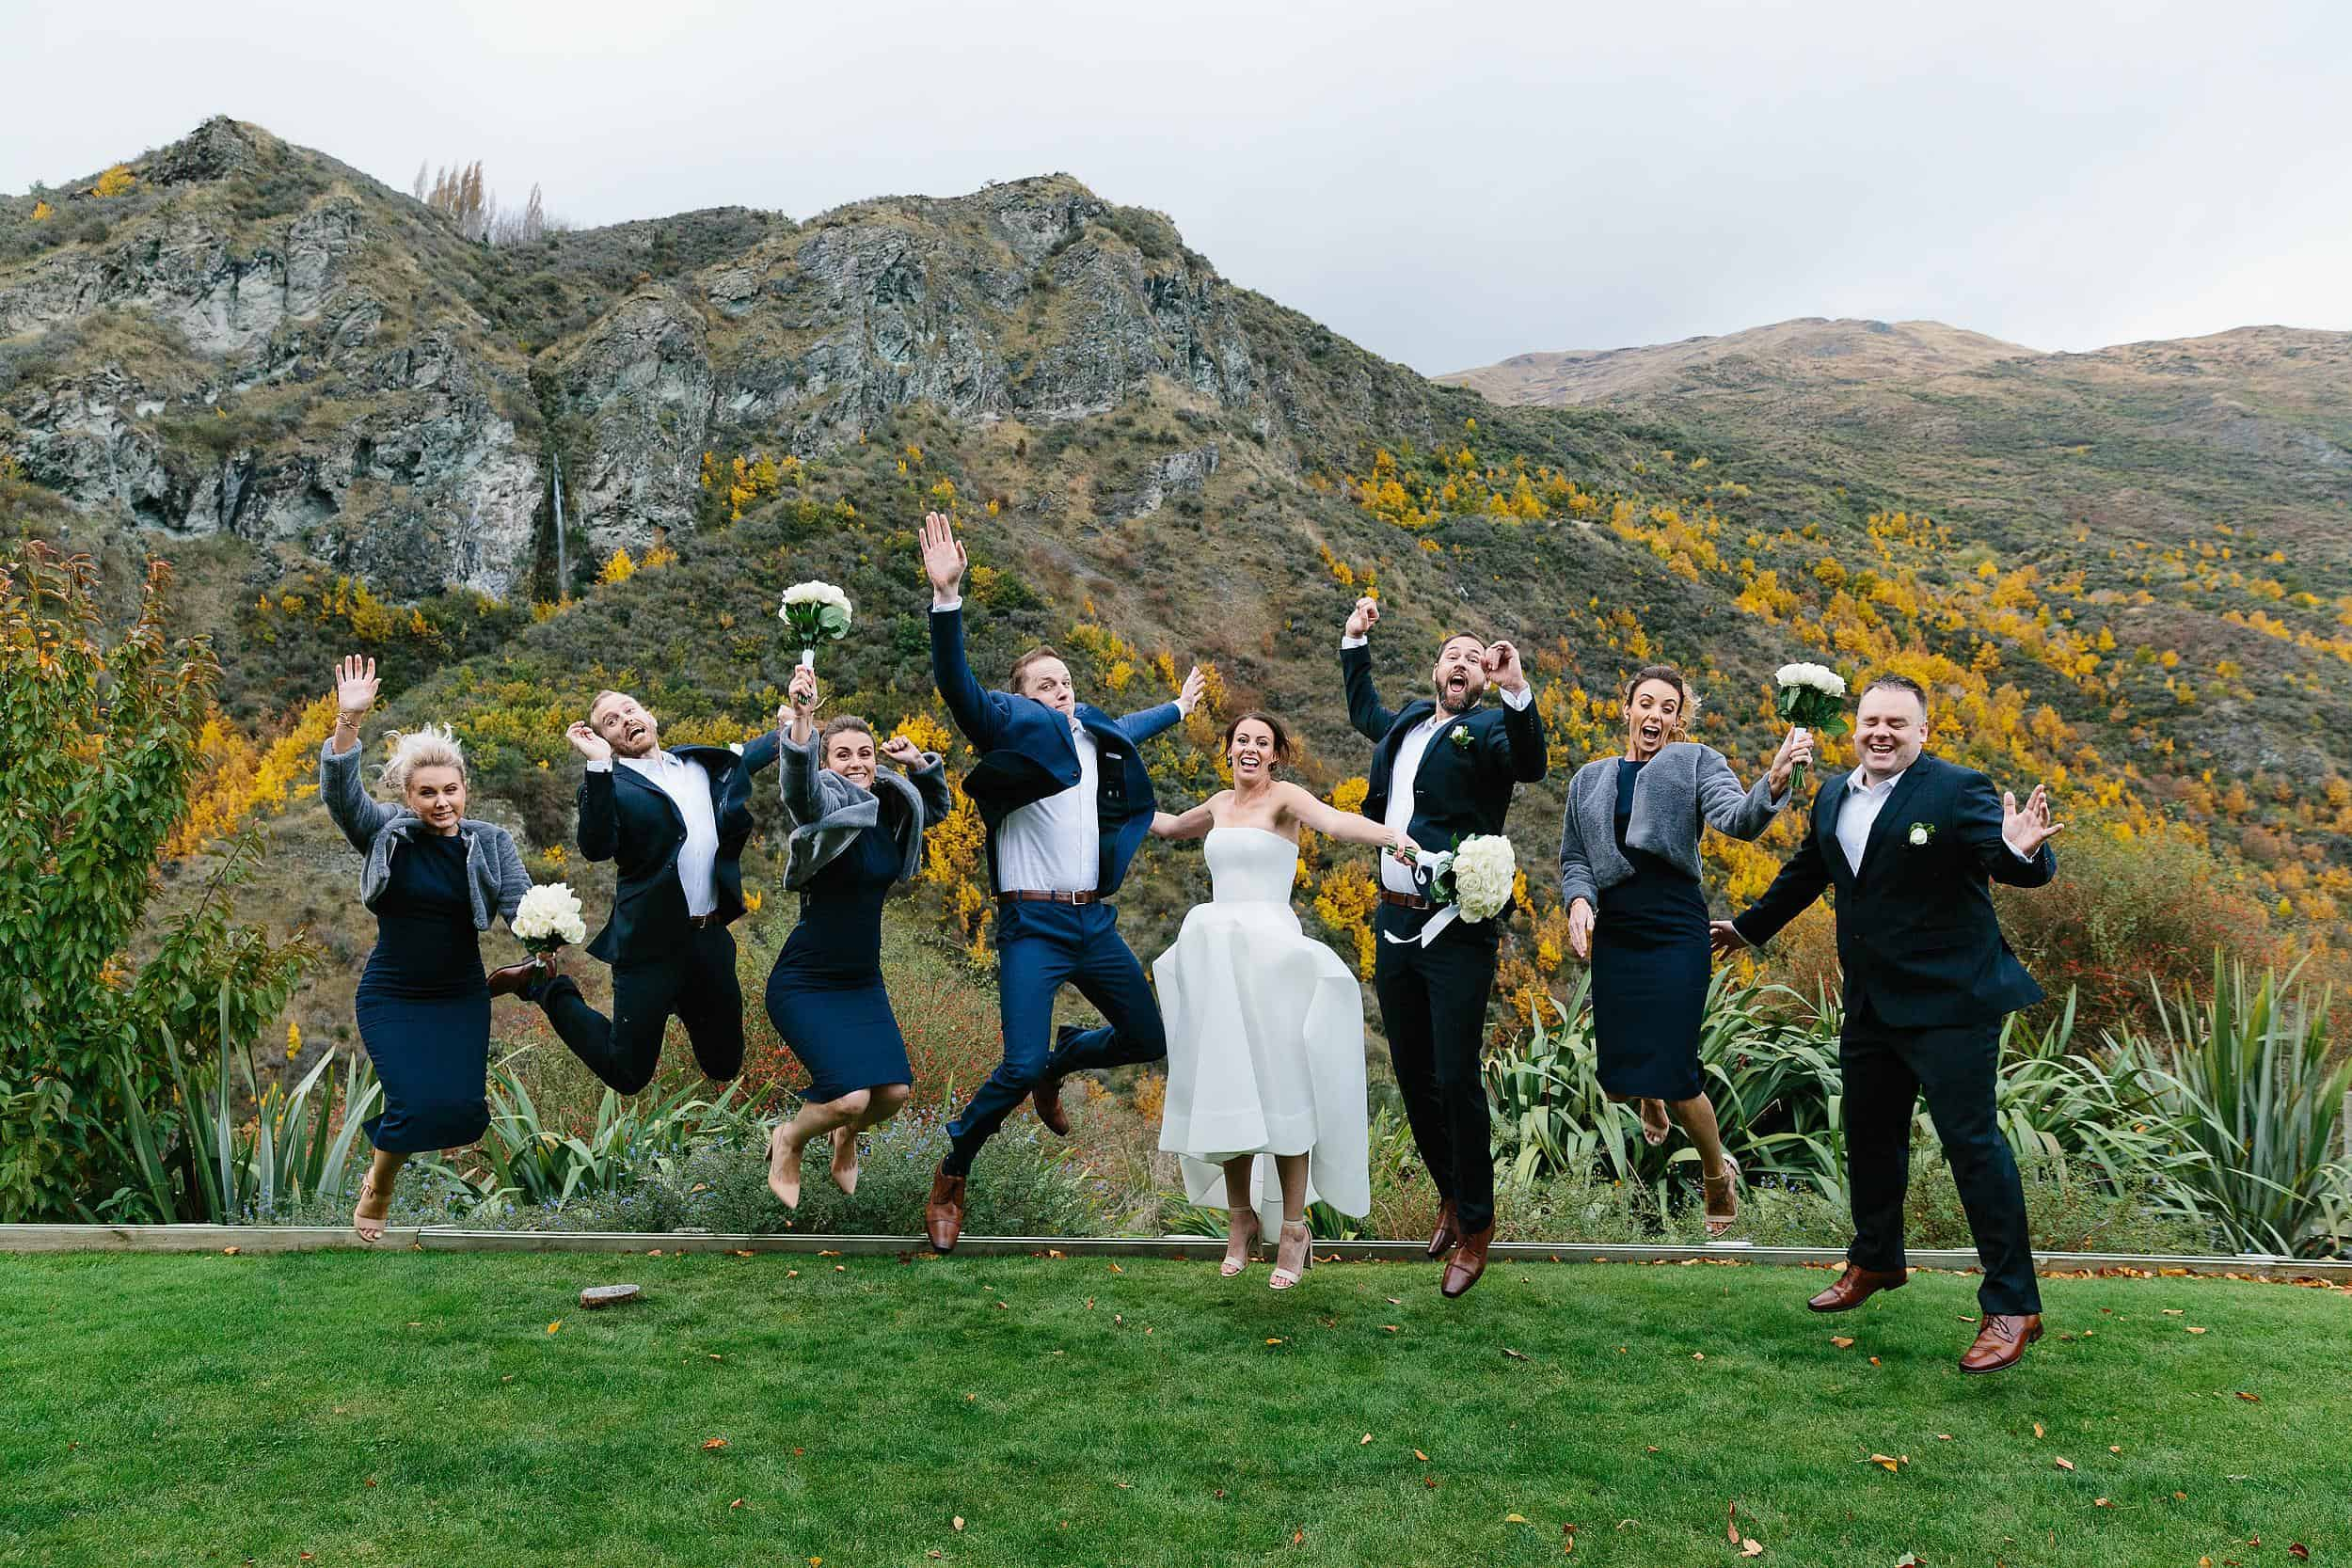 Wedding party jump in the air